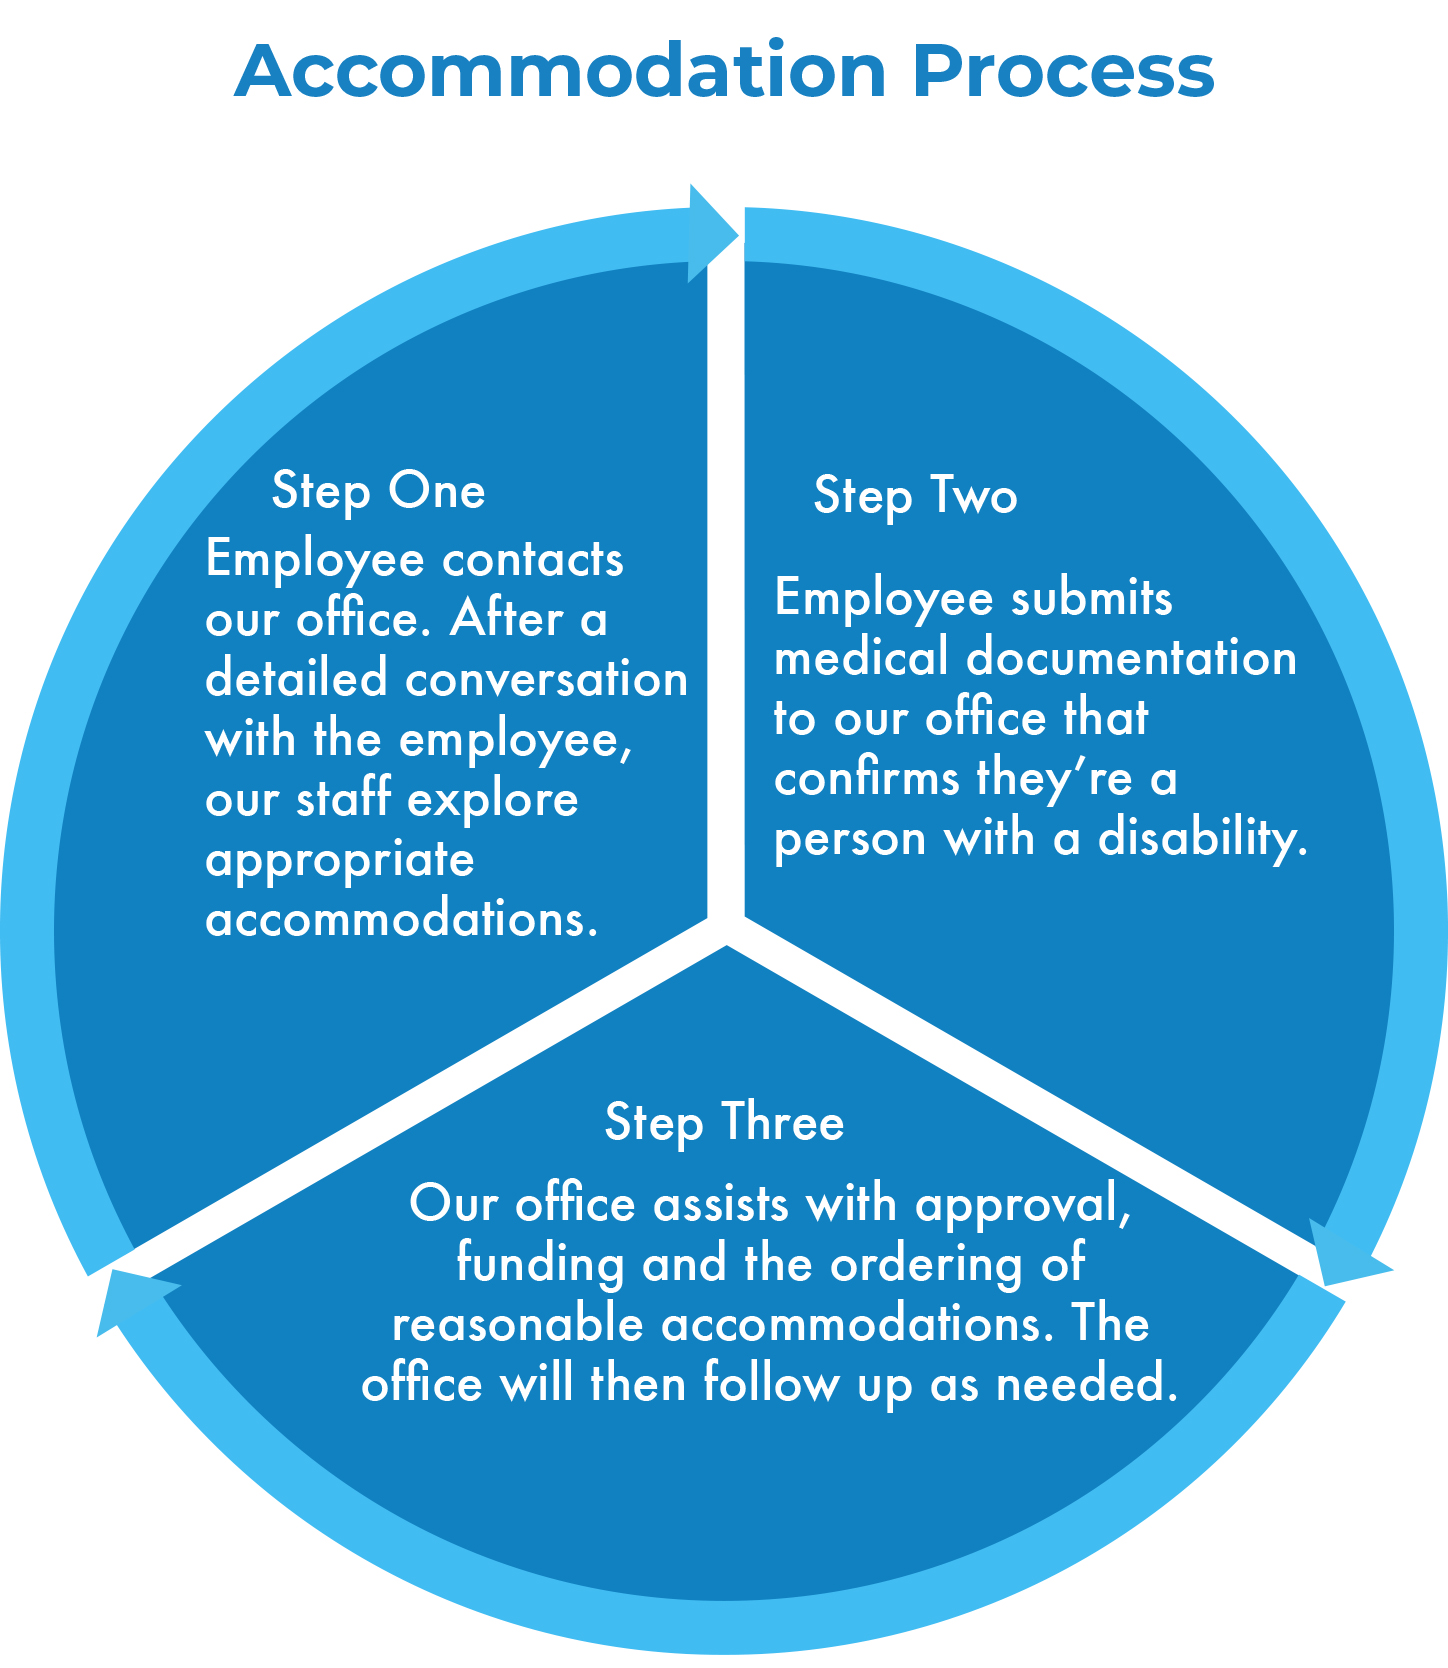 ADA Accommodations Process wheel. Step One: Employee contacts our office. After a detailed conversation with the employee, our staff explore appropriate accommodations. Step Two: Employee submits medical documentation to our office that confirms they're a person with a disability. Step Three: Our office assists with approval, funding and the ordering of reasonable accommodations. The office will then follow up as needed.